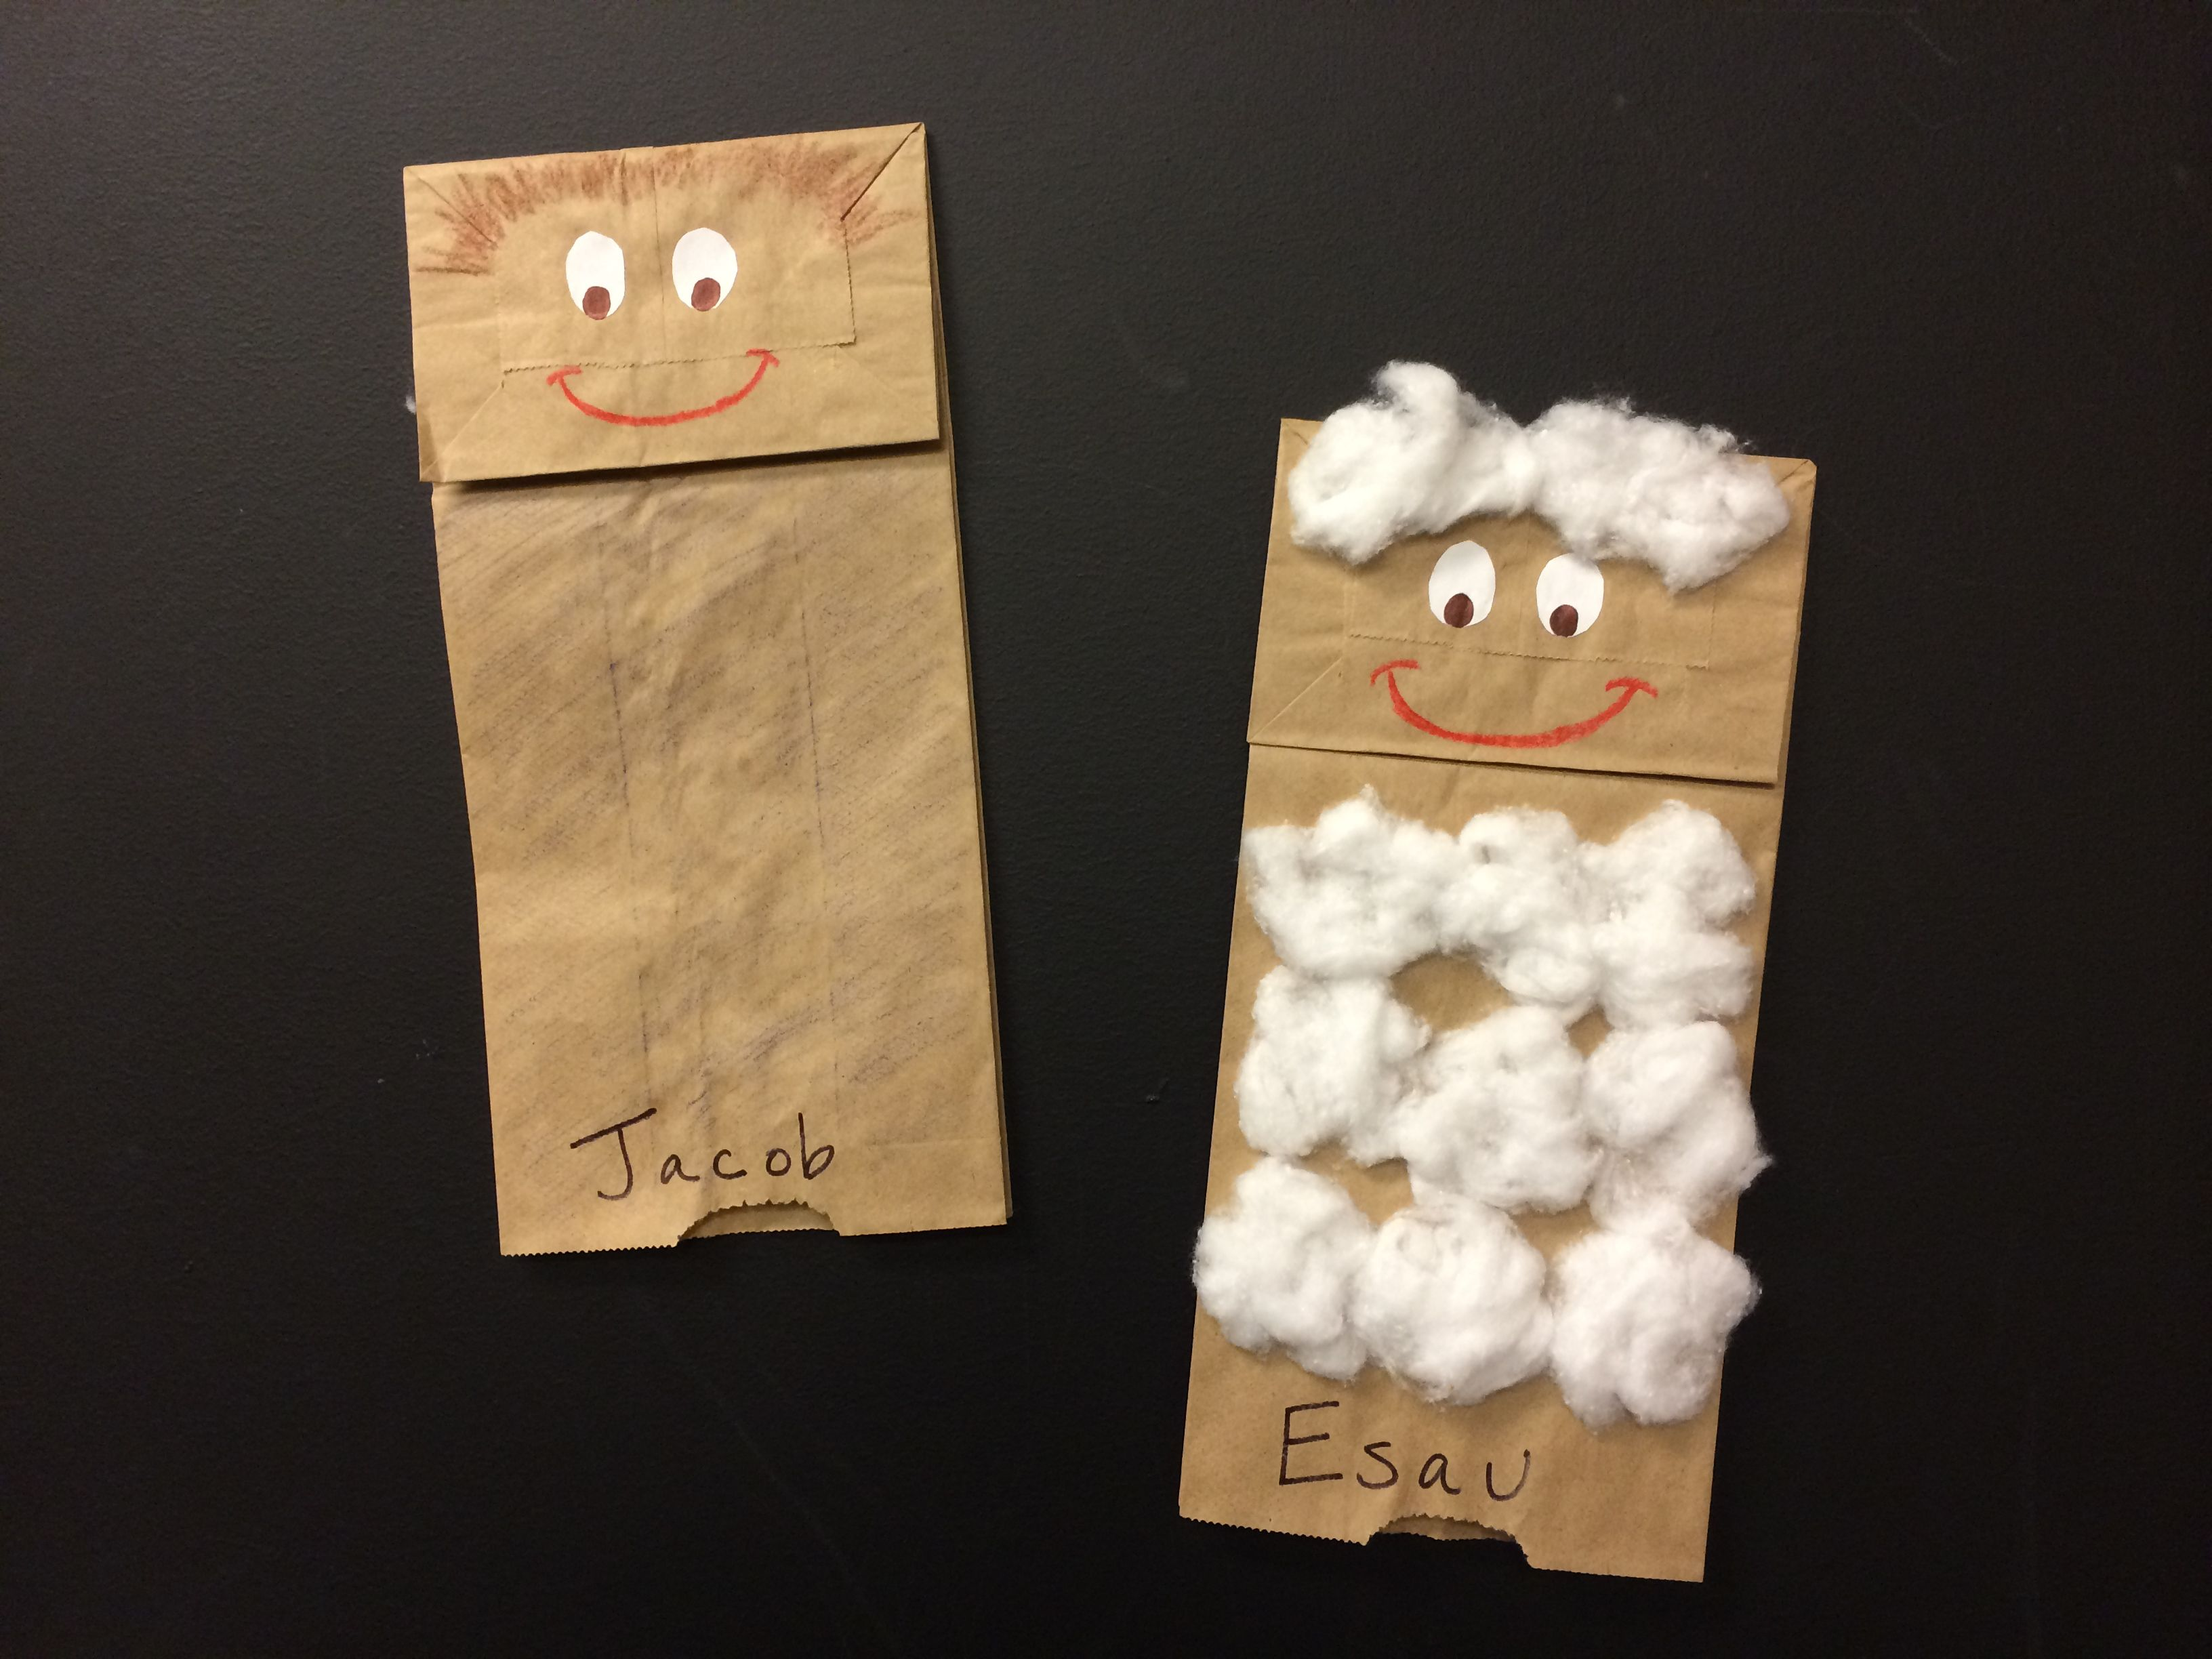 Jacob And Esau Puppets